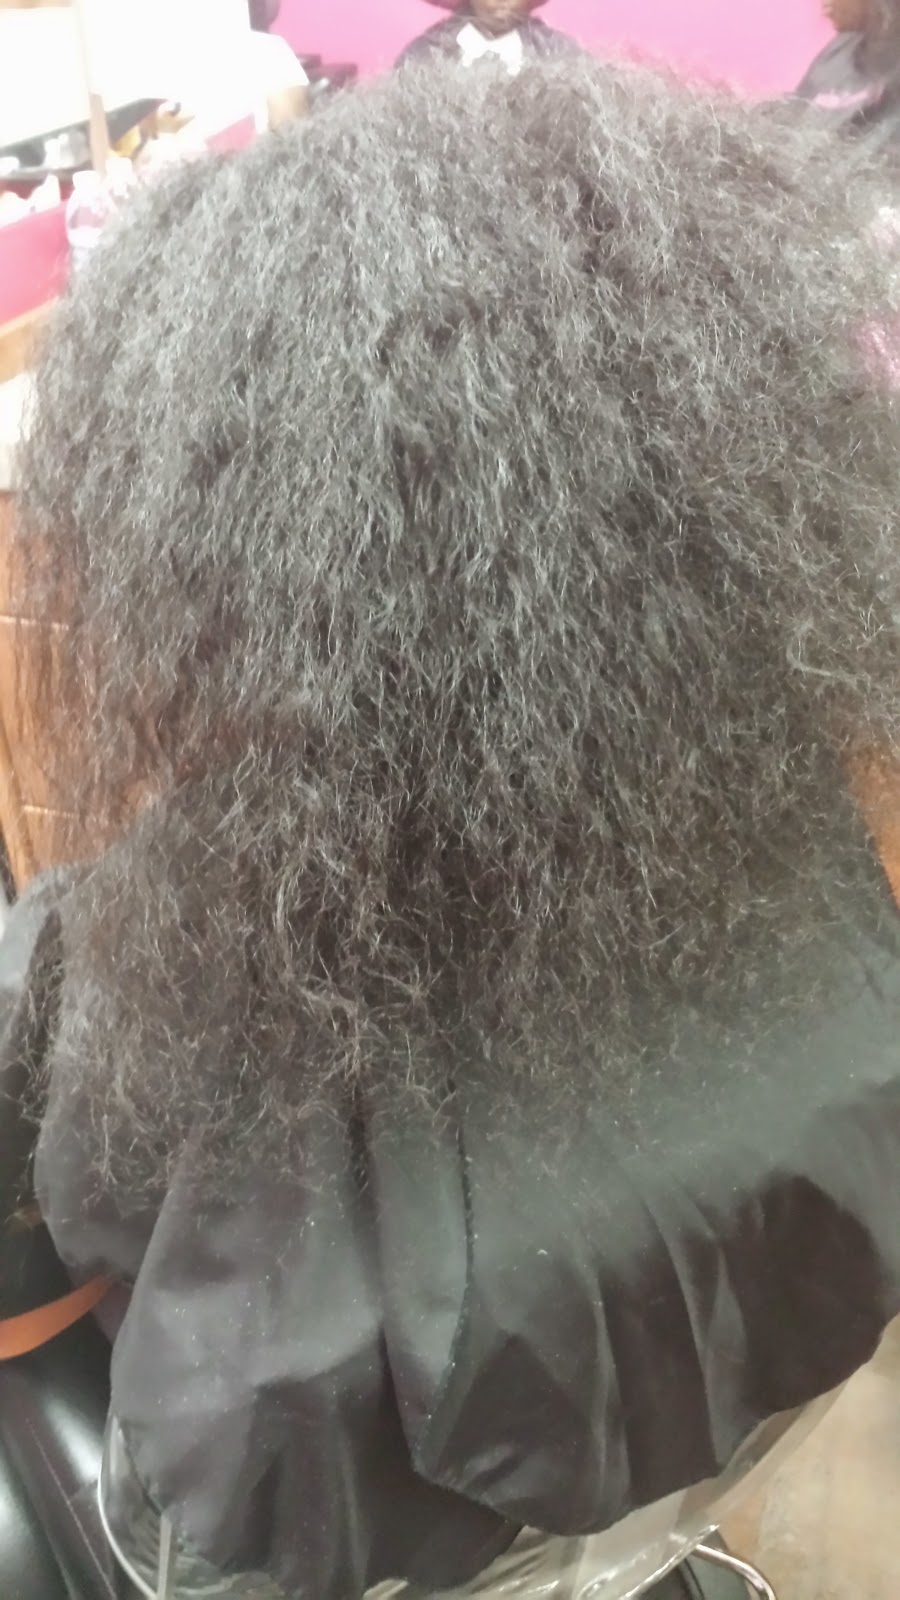 How To Detangle Severely Matted Hair Uphairstyle